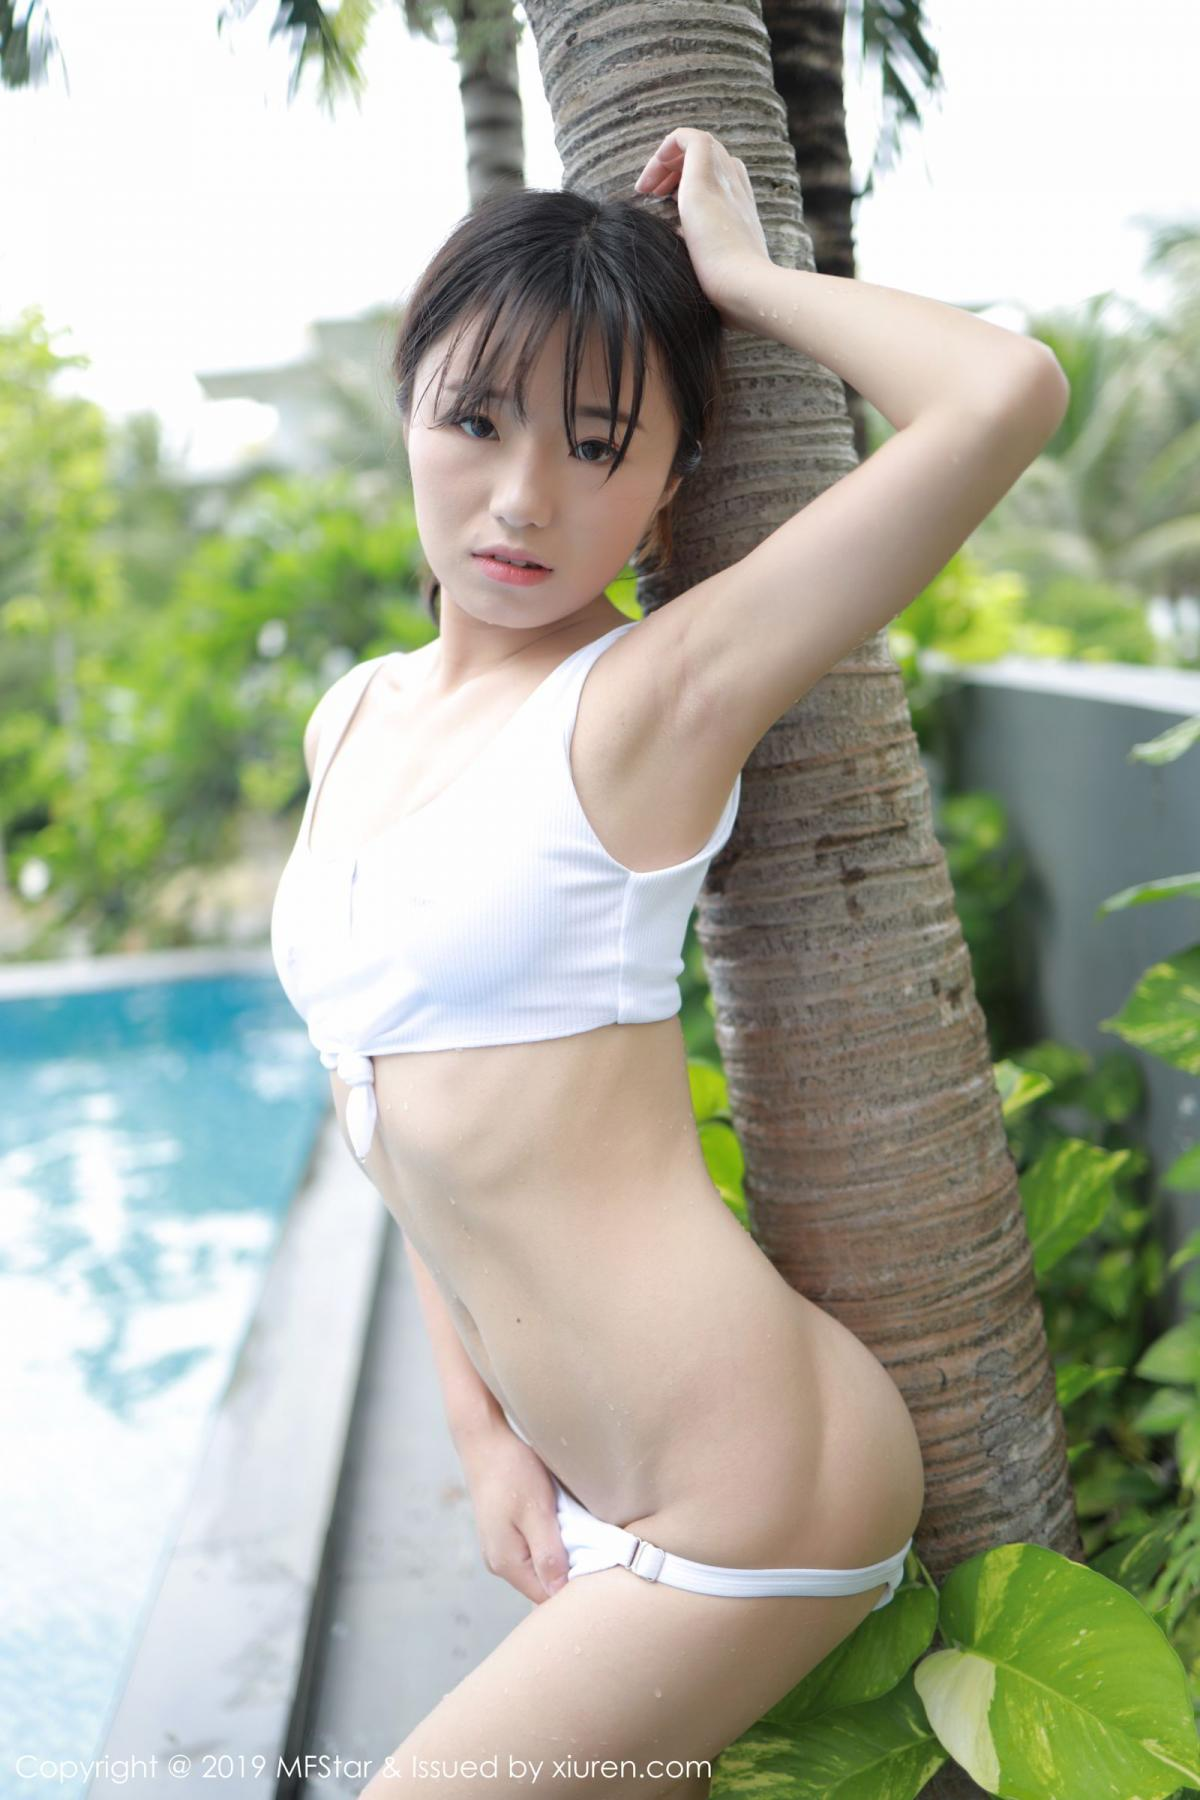 [XiuRen] Vol.214 Cang Jing You Xiang 53P, Bikini, Cang Jing You Xiang, Swim Pool, Xiuren